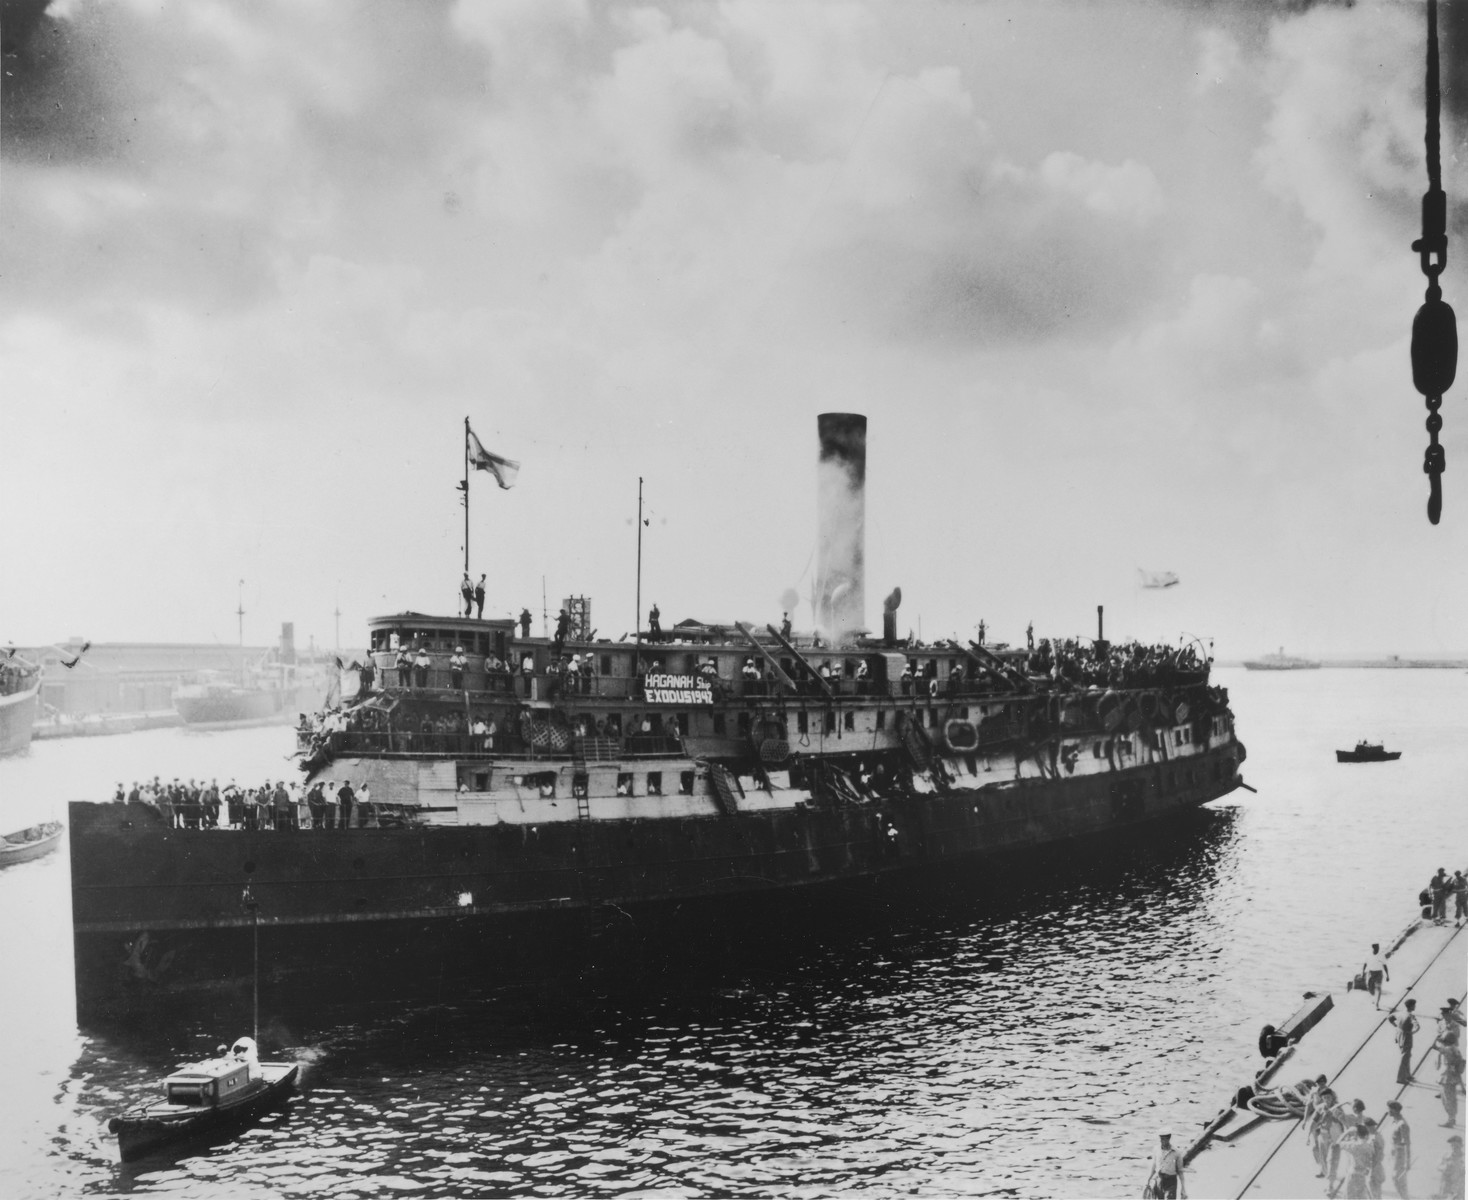 The battered illegal immigrant ship, Exodus 1947, is towed into Haifa harbor.